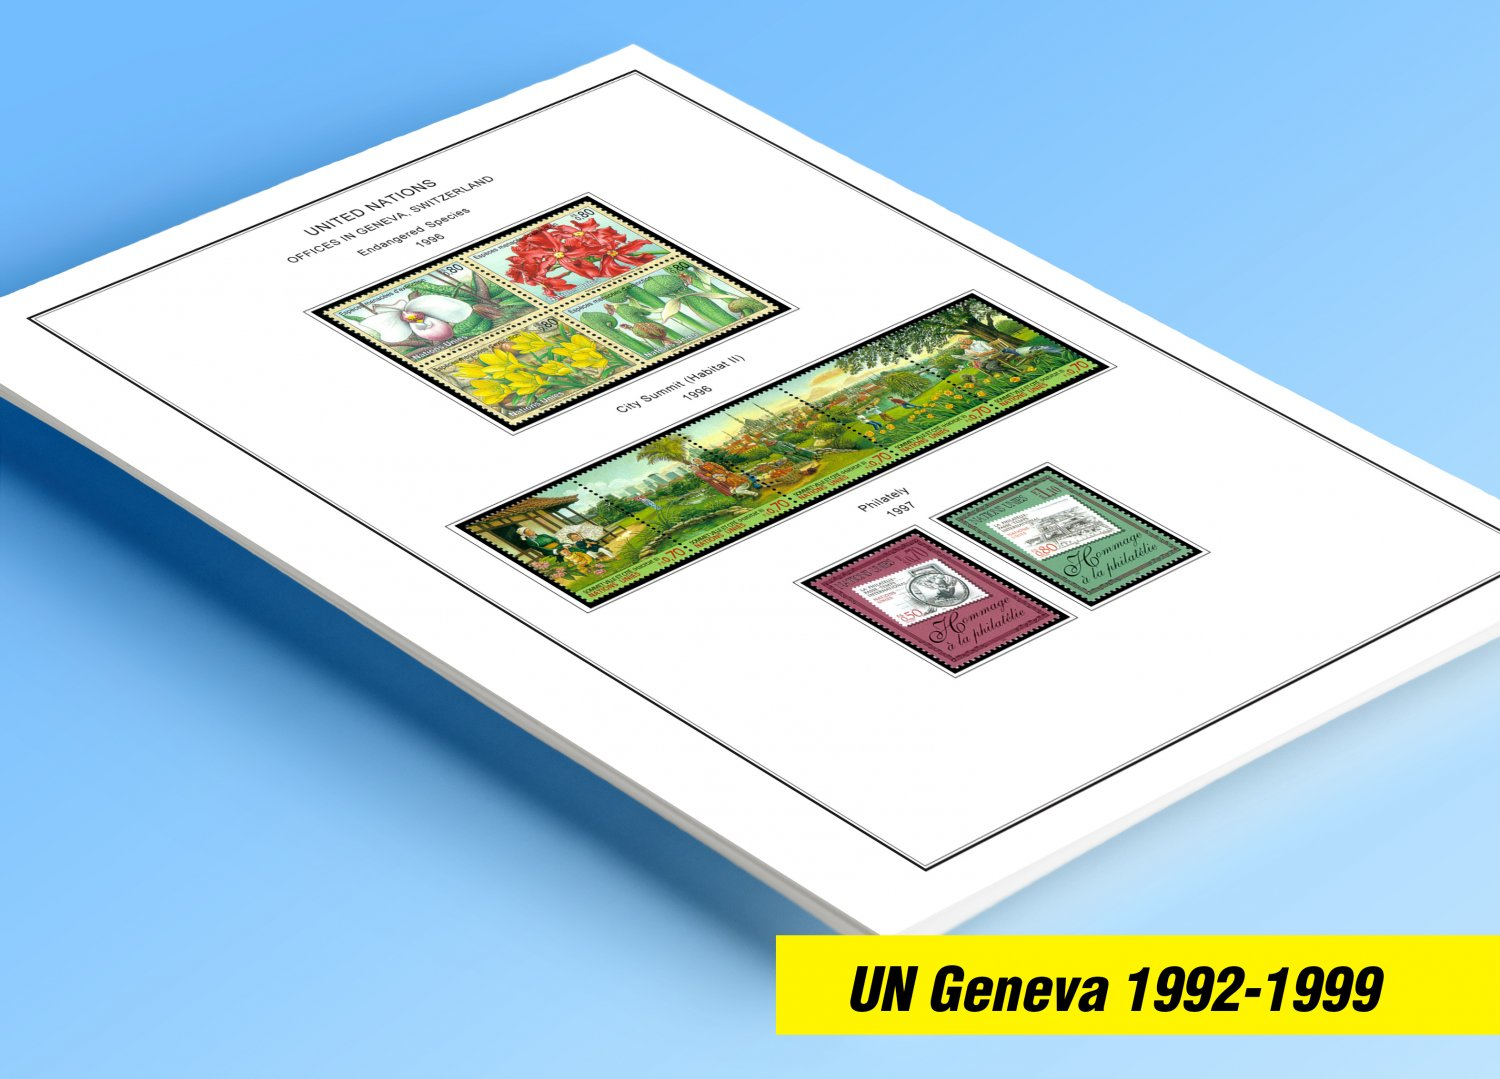 COLOR PRINTED UNITED NATIONS - GENEVA OFFICES 1992-1999 STAMP ALBUM PAGES (30 illustrated pages)